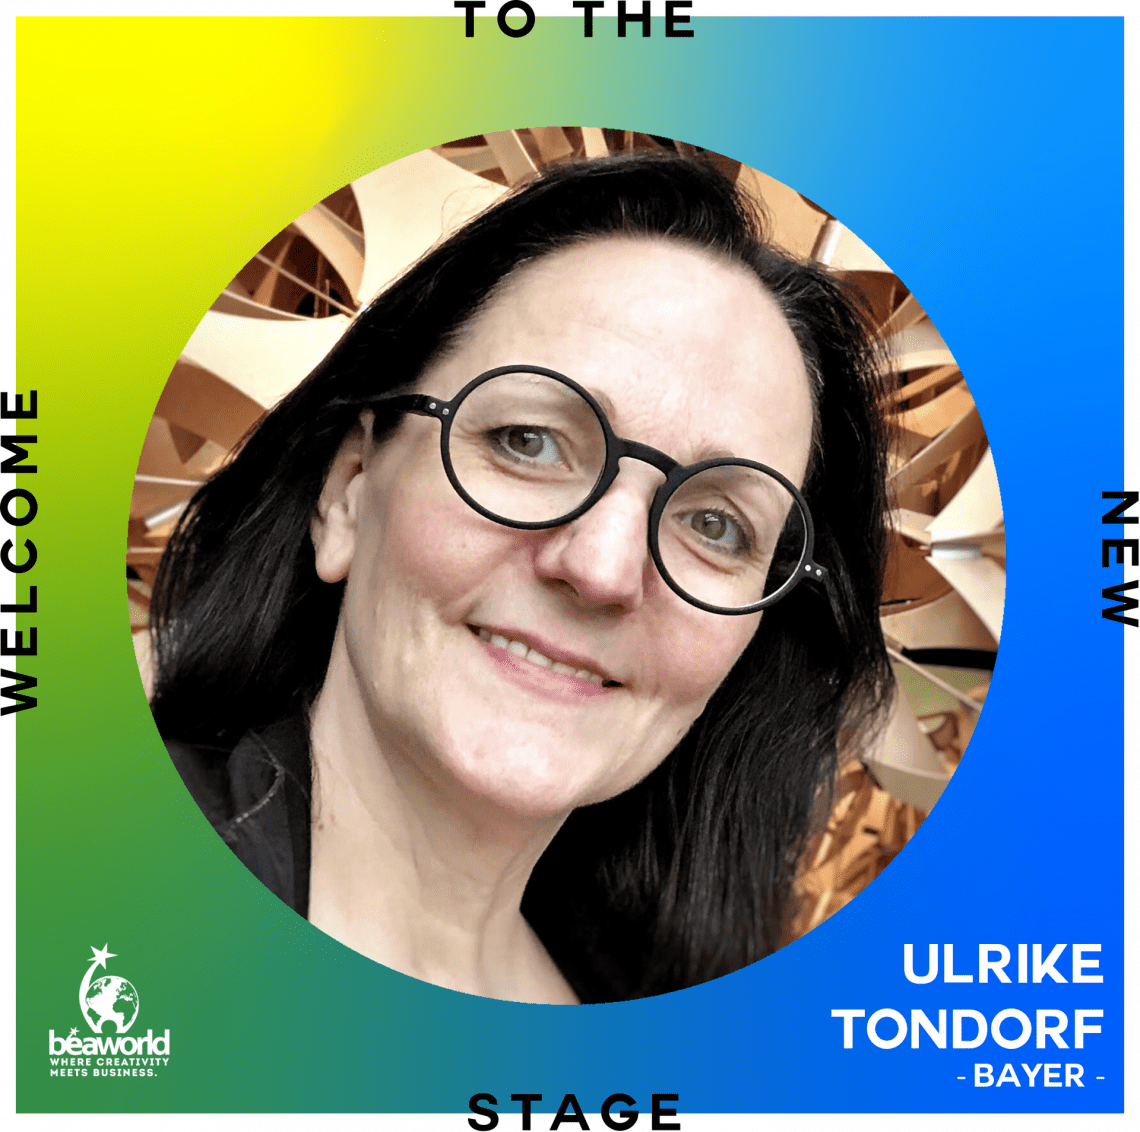 Ulrike Tondorf, Head of Brand Activation & Engagement at Bayer, will chair the corporate Jury of the Best Event Awards 2021.